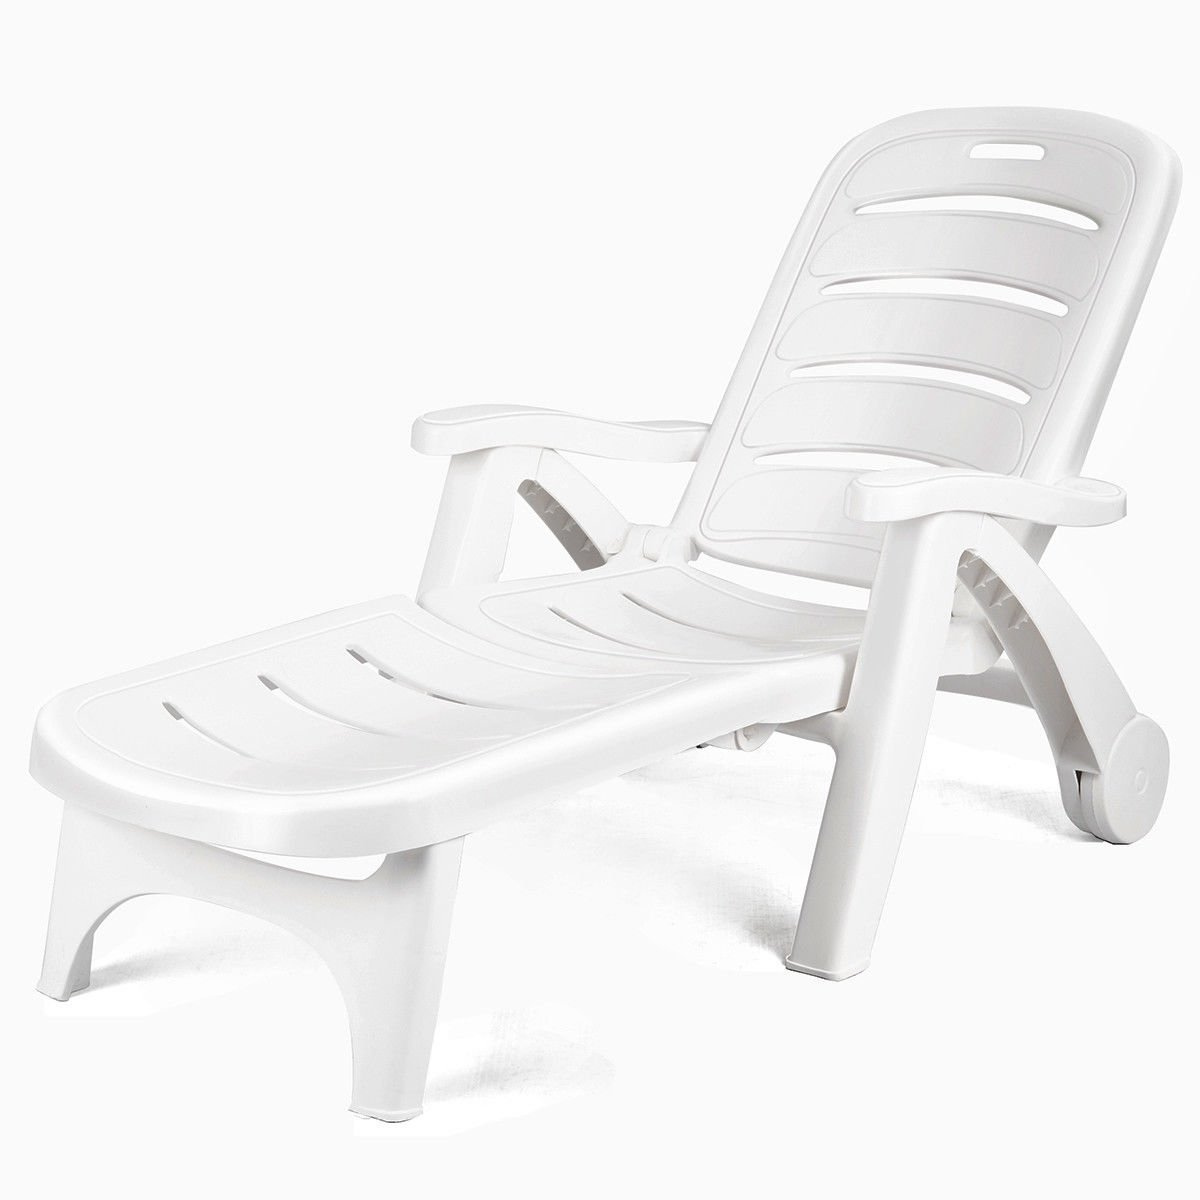 5 Position Adjustable Patio Recliner Chair With Wheels Deck